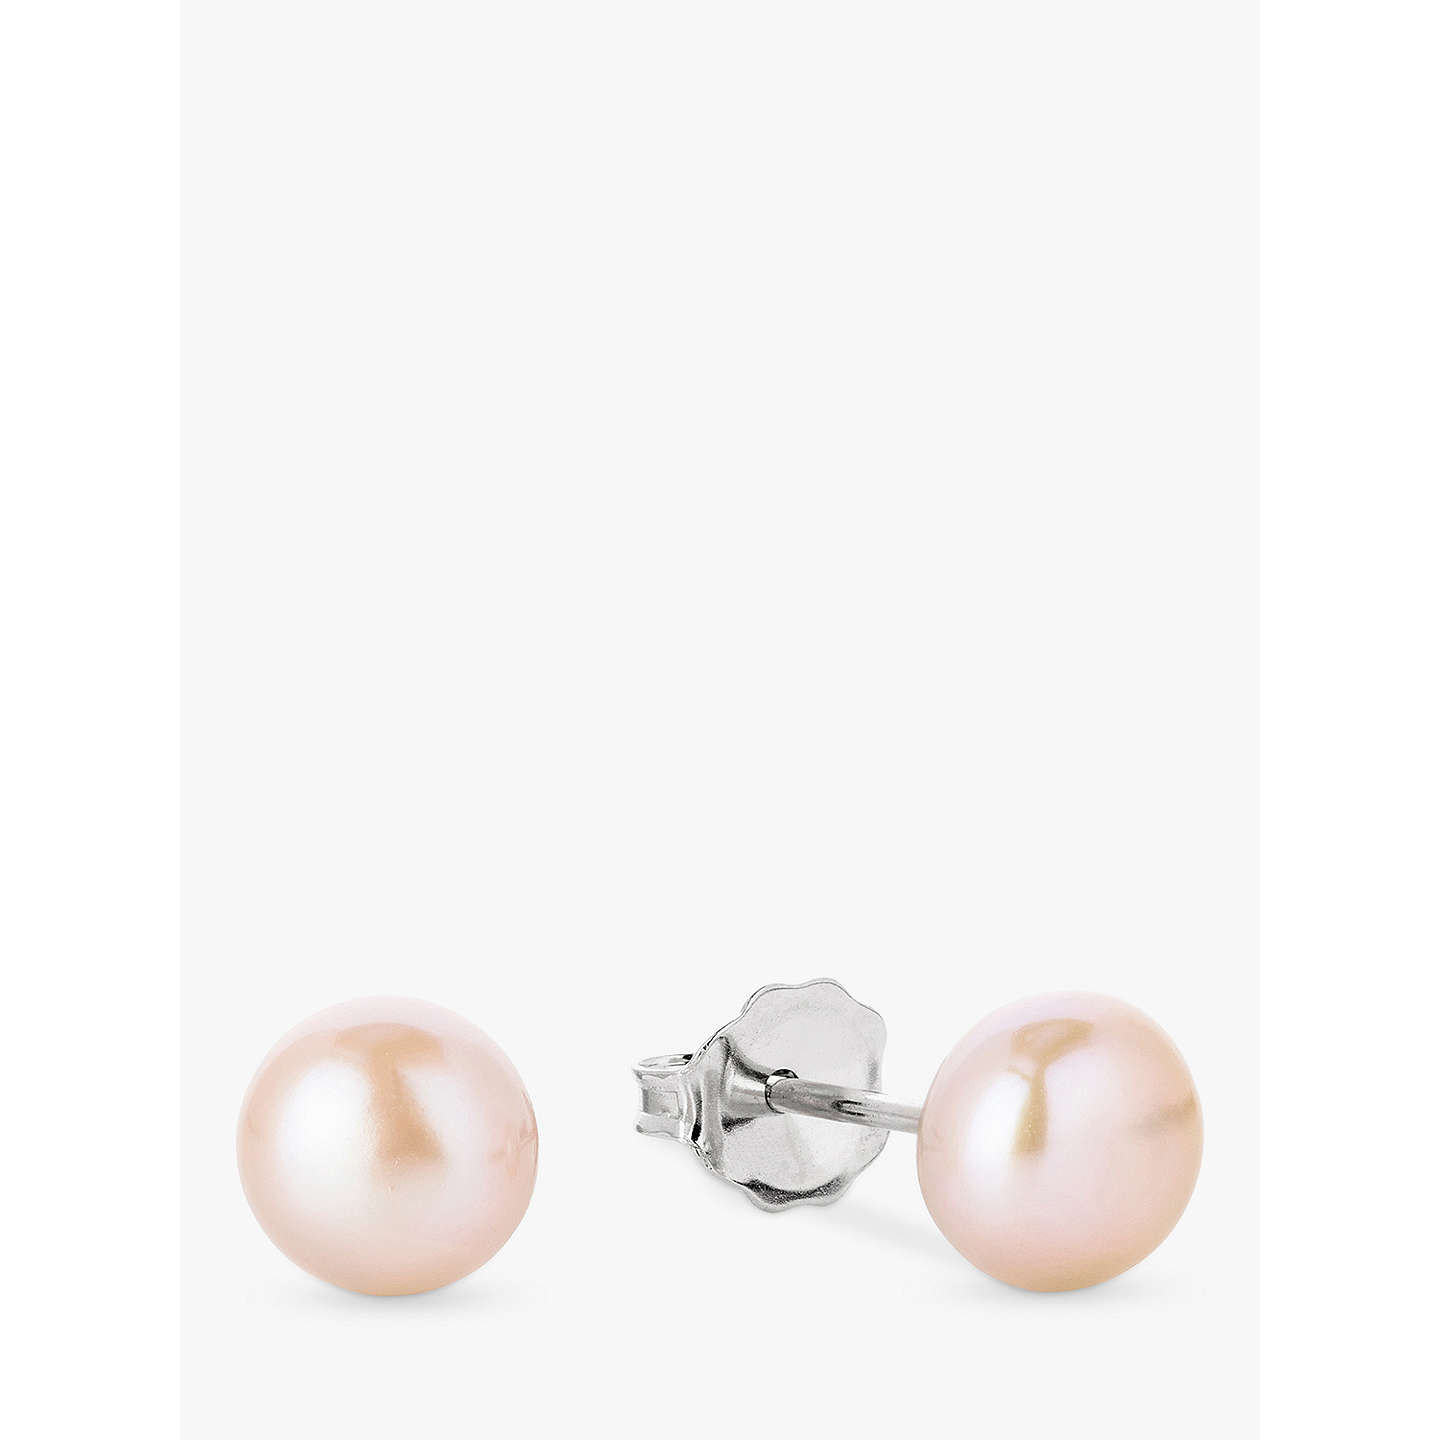 hi gold hemi stud button earring cleo set res rhodium